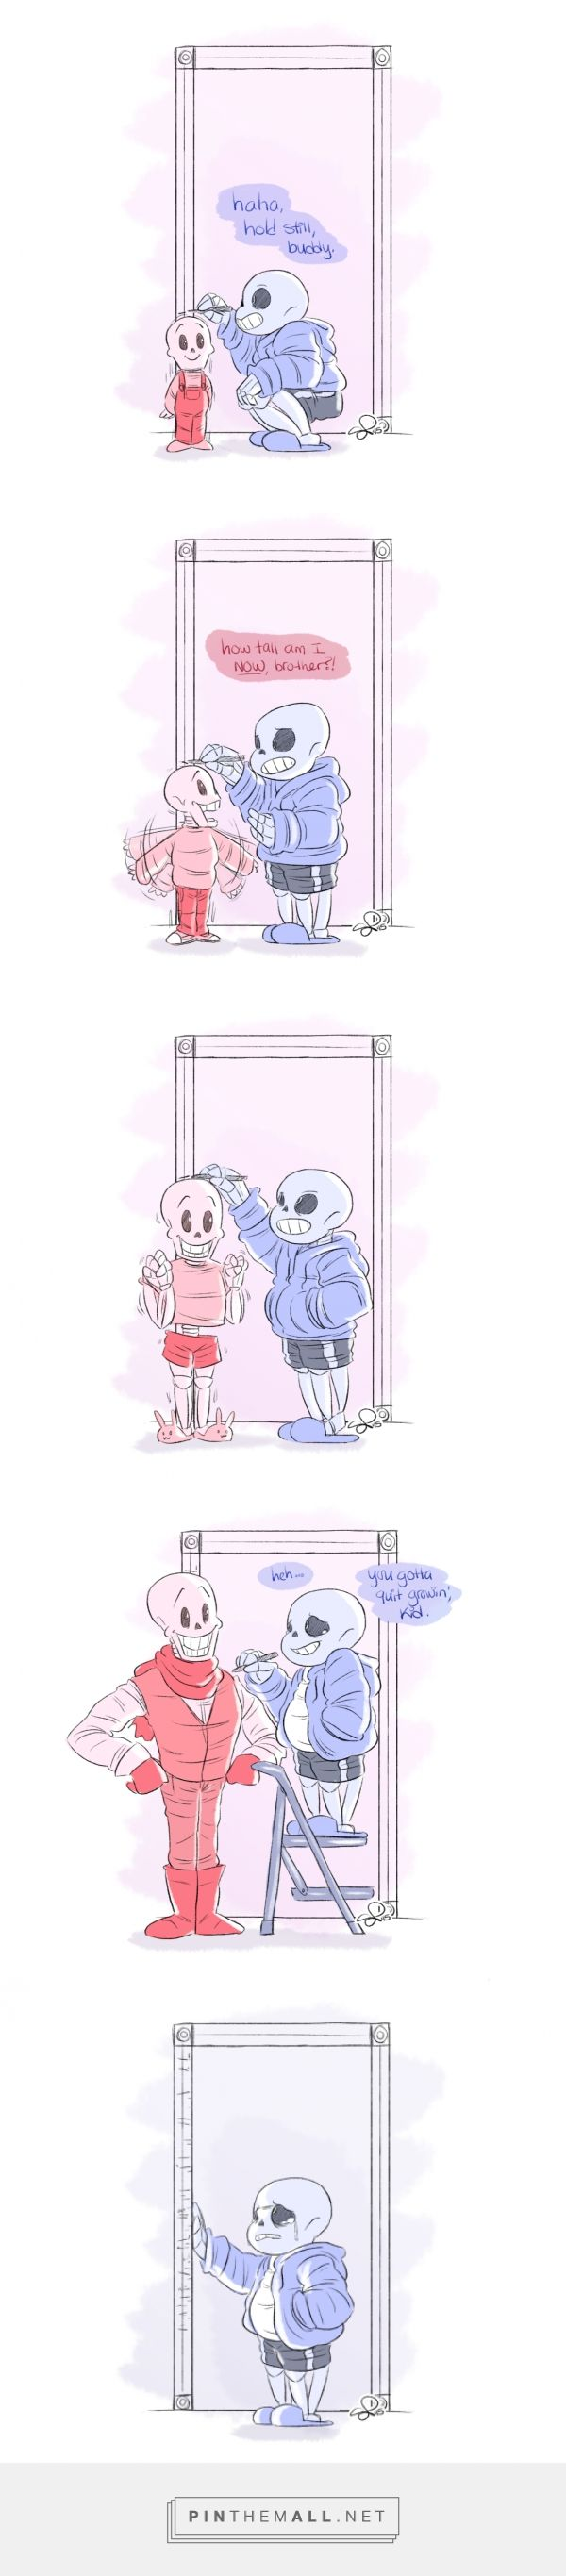 Sans: ....... Chara: *slow grin* I feel so sorry for you, Sans. Come here. I'll give you an embrace to make up for it.   D E A T H ' S E M B R A C E